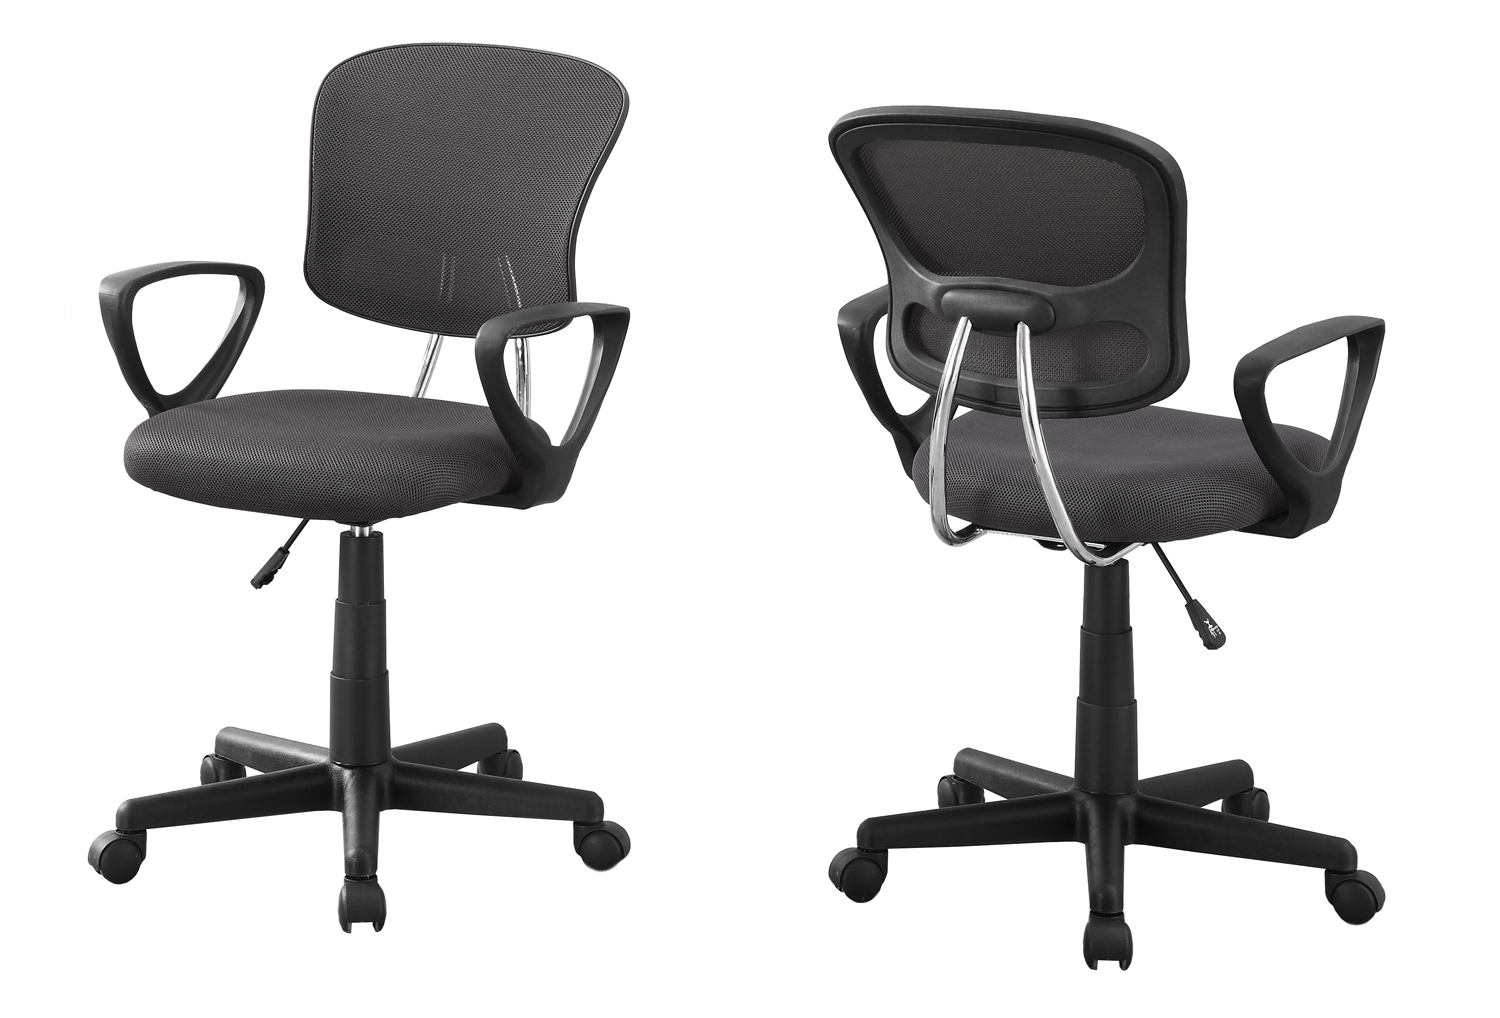 Office Chair - Grey Mesh Juvenile / Multi Position